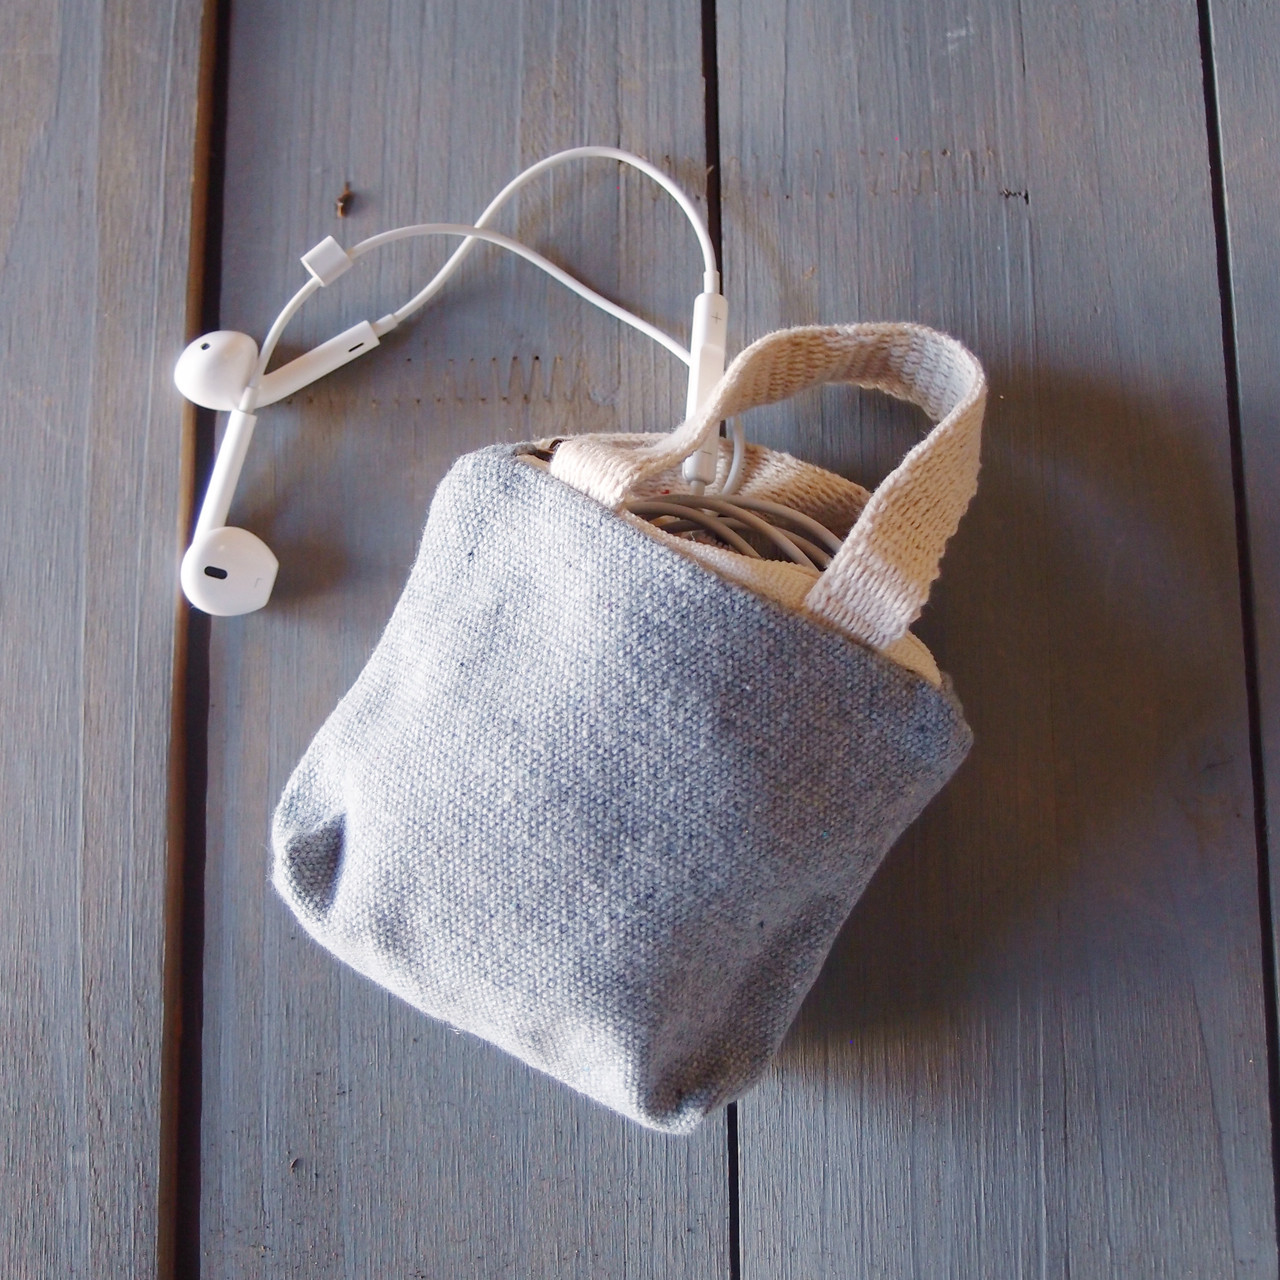 Gray Tiny Tote Zippered with Natural Handles B690-70, Wholesale Mini Tote Bags | Packaging Decor